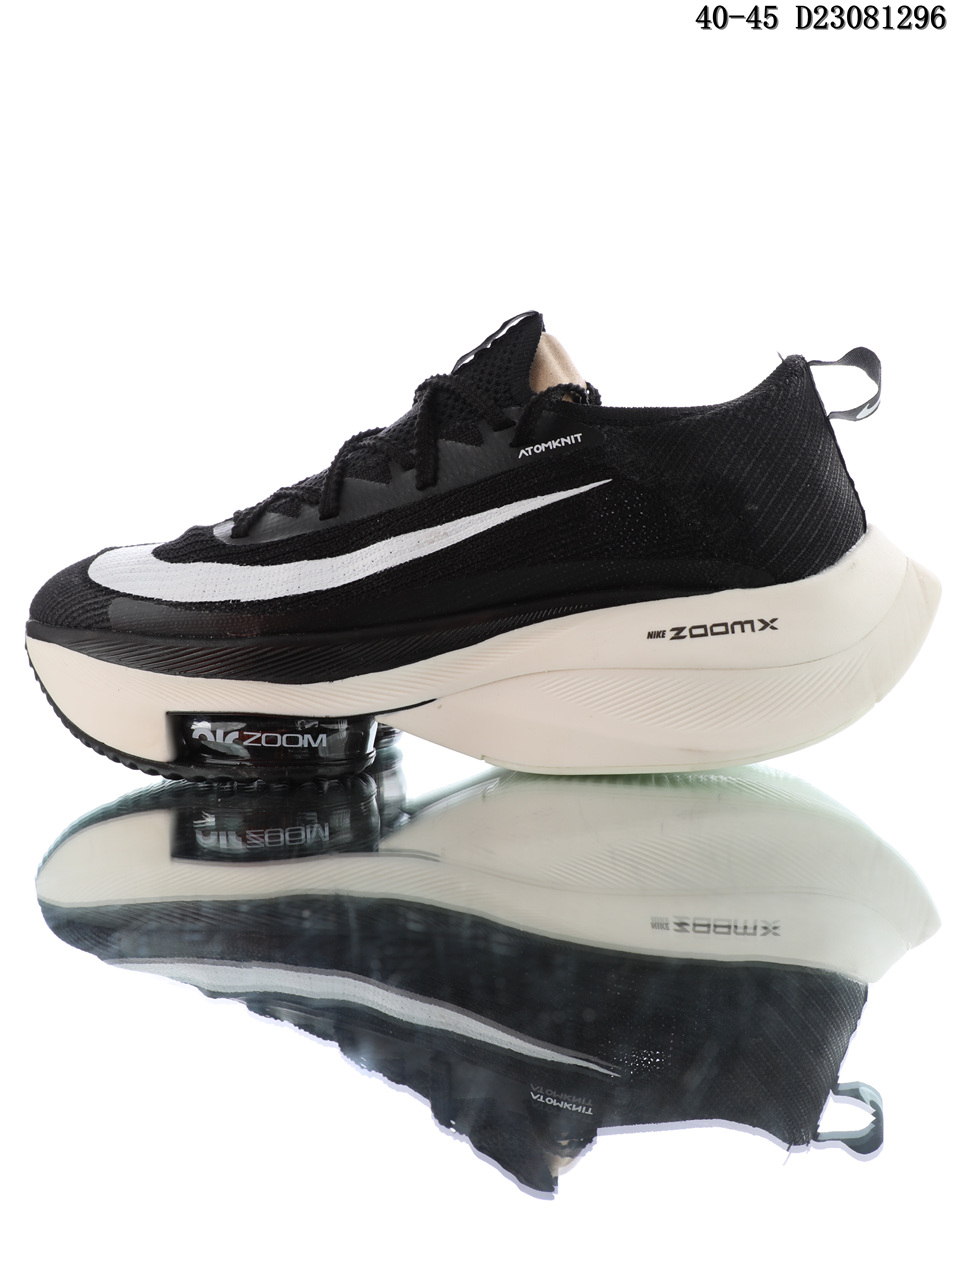 Nike Air Zoom Alphafly NEXT% running shoes mesh Shop